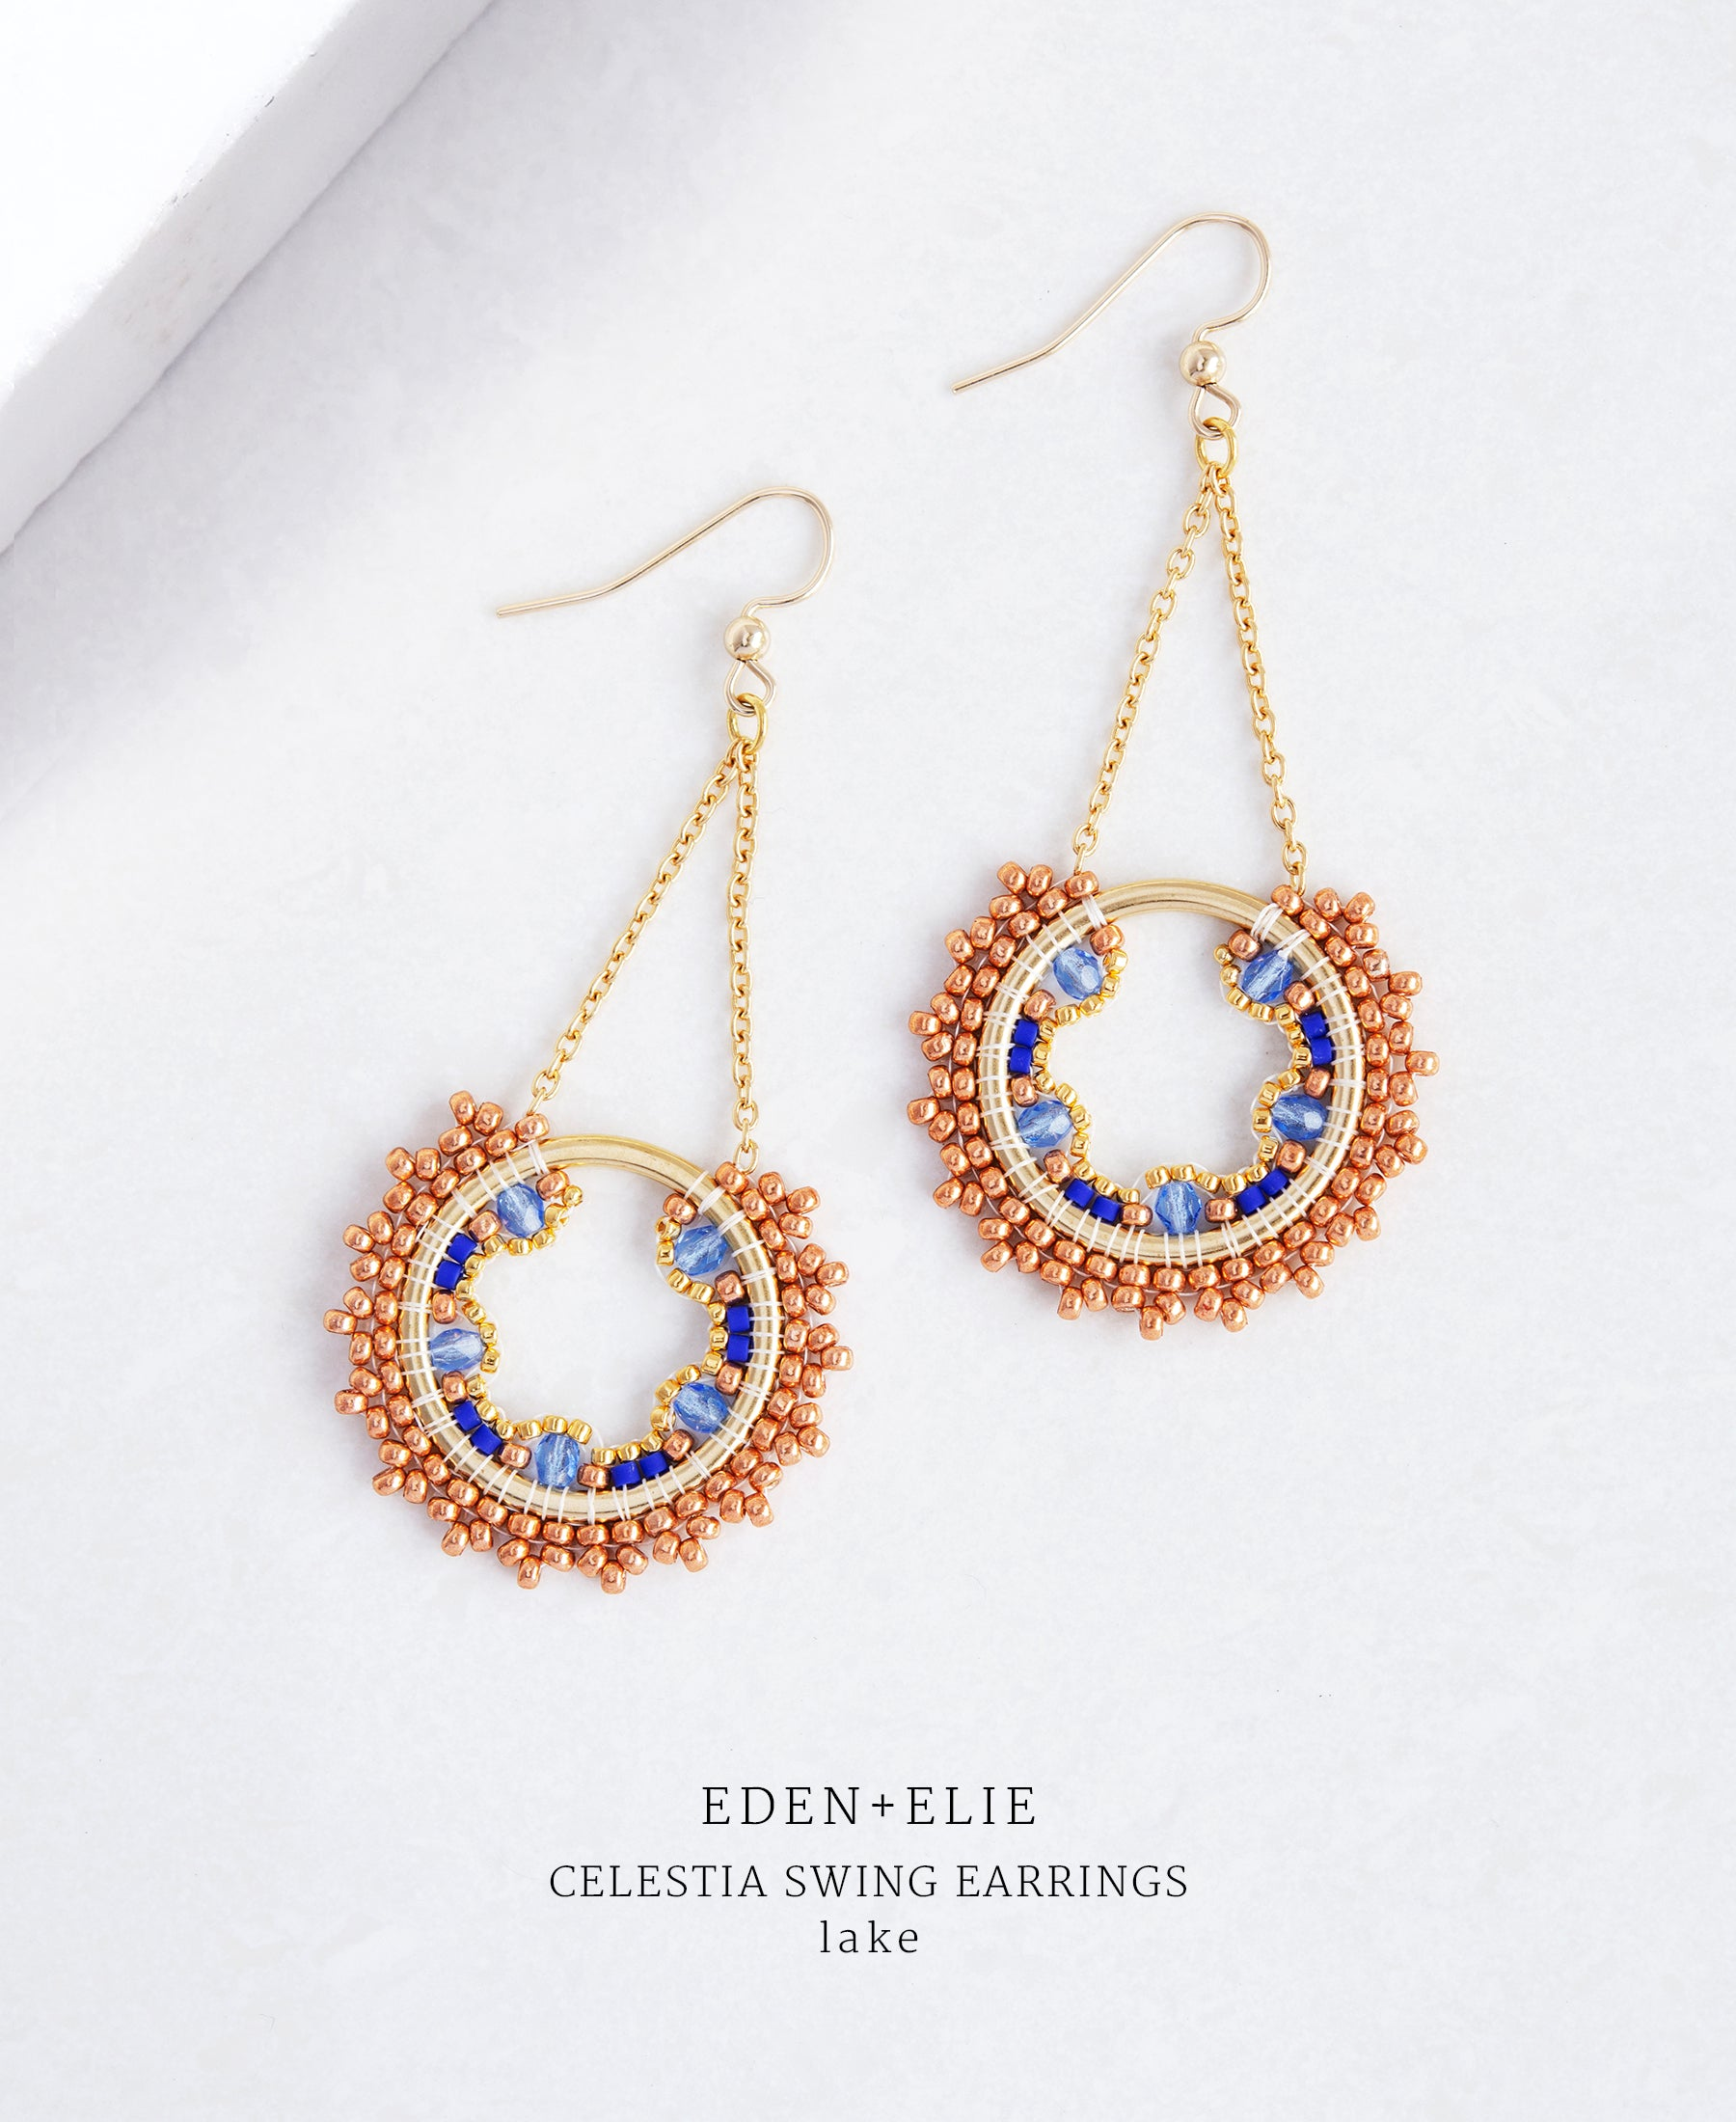 EDEN + ELIE Celestia swing earrings - lake blue